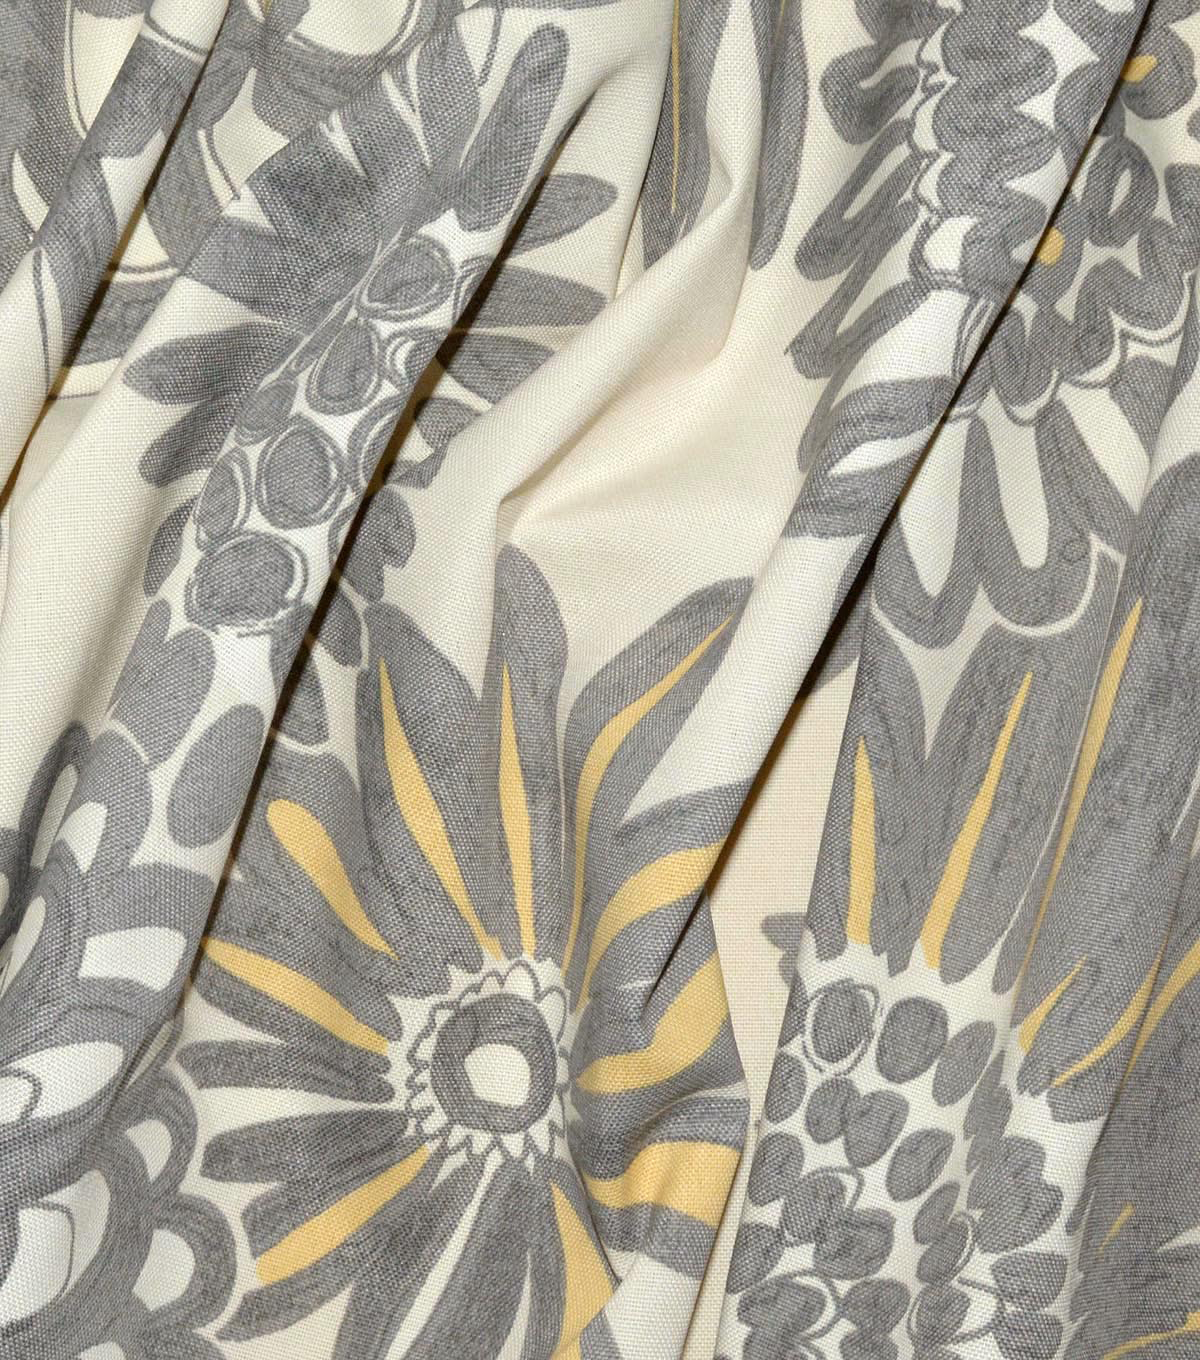 Genevieve Gorder Outdoor Print Fabric 54\u0027\u0027-Cloud Flower Pops